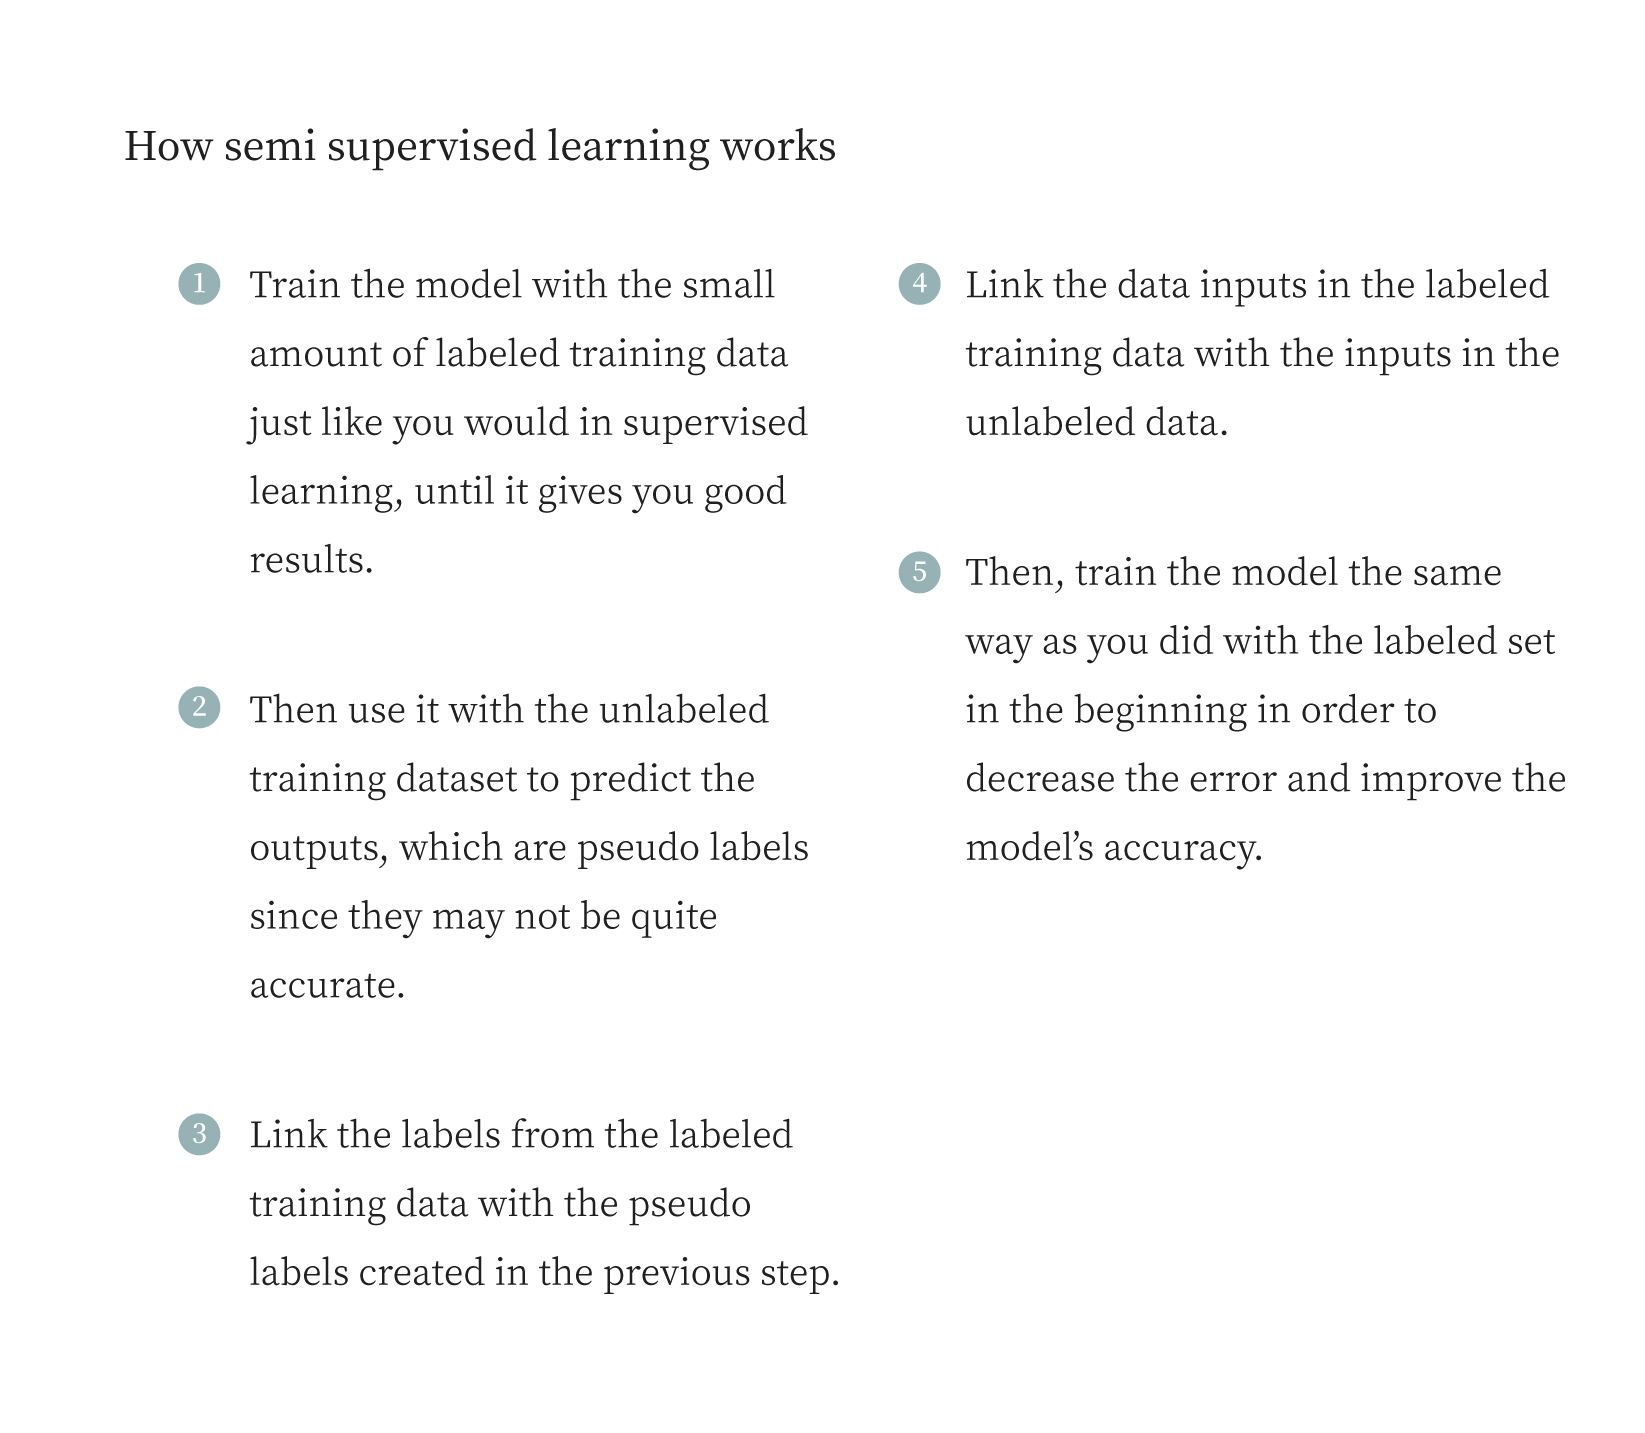 How semi-supervised learning works, a list